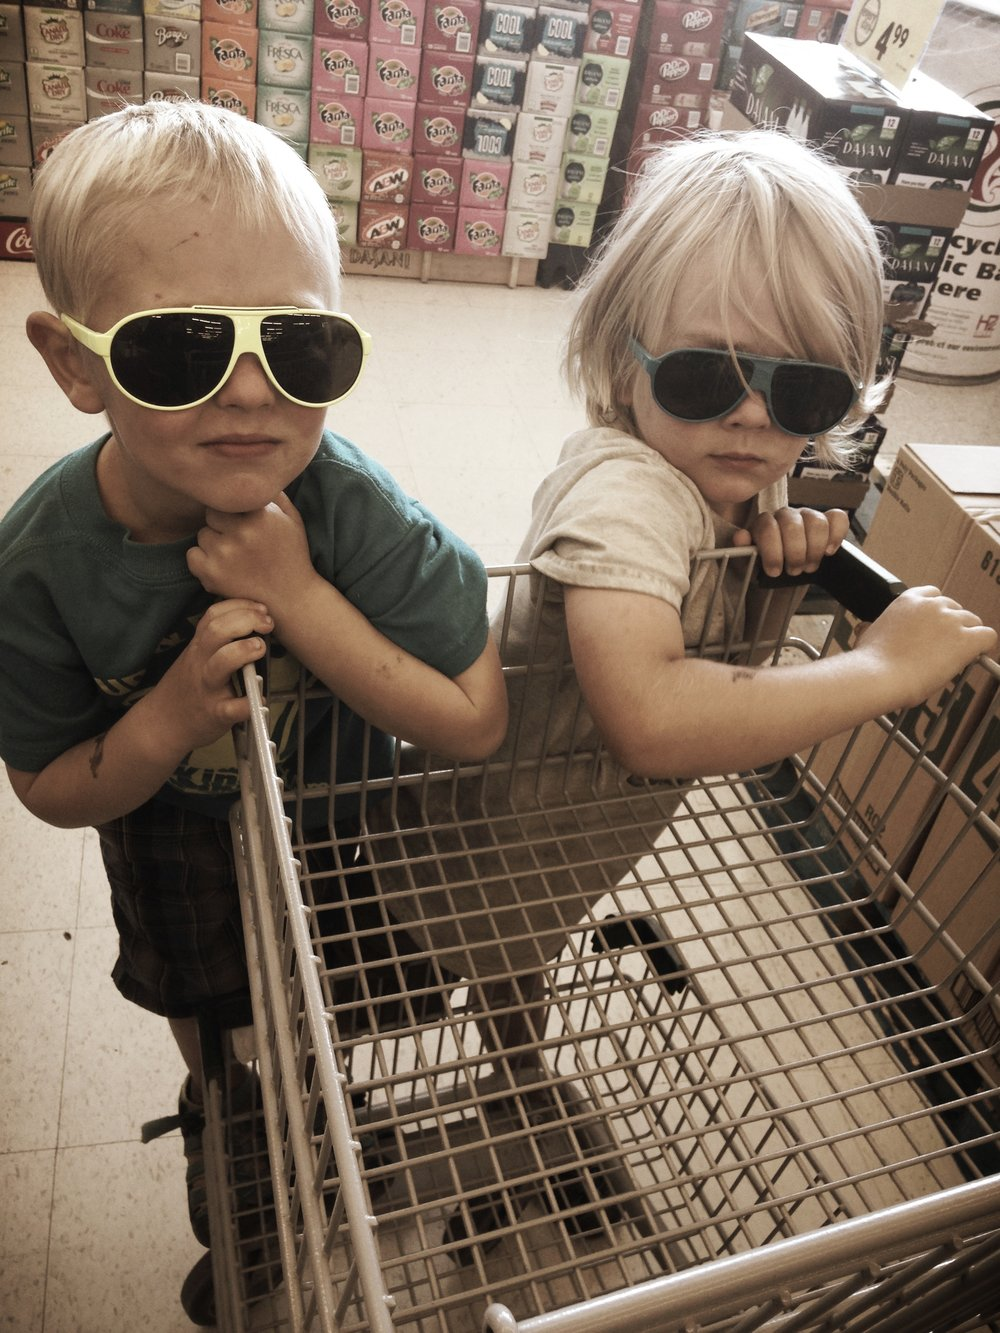 Our boys. We got some looks on this shopping trip. This may have been because we were the dirtiest family in the store. We were on week 7 of our 9 week camping adventure.